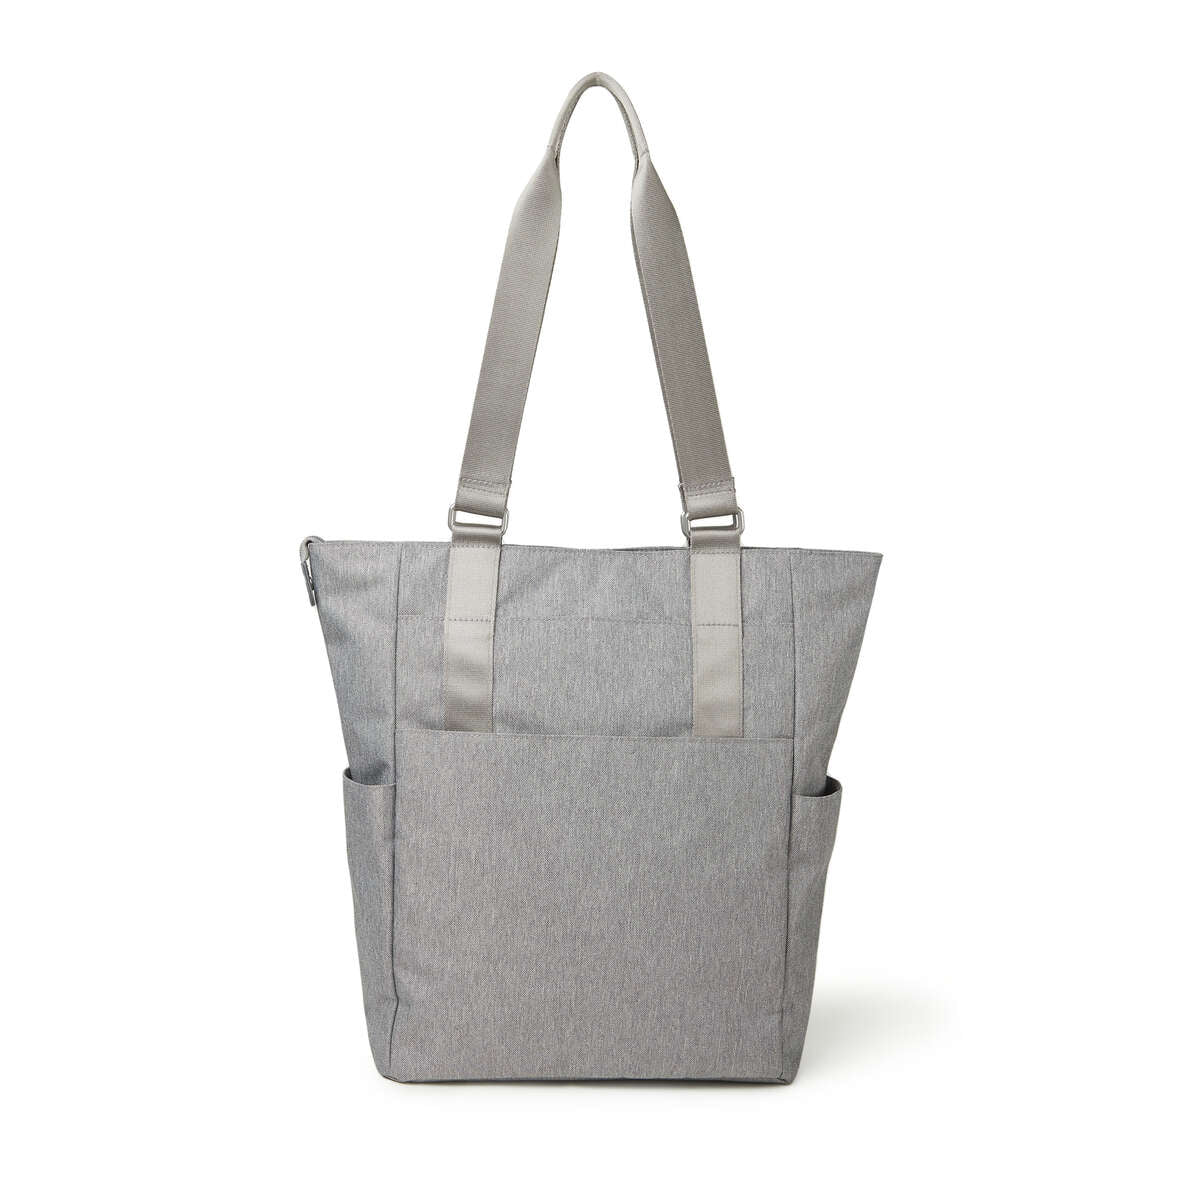 Make Way Tote